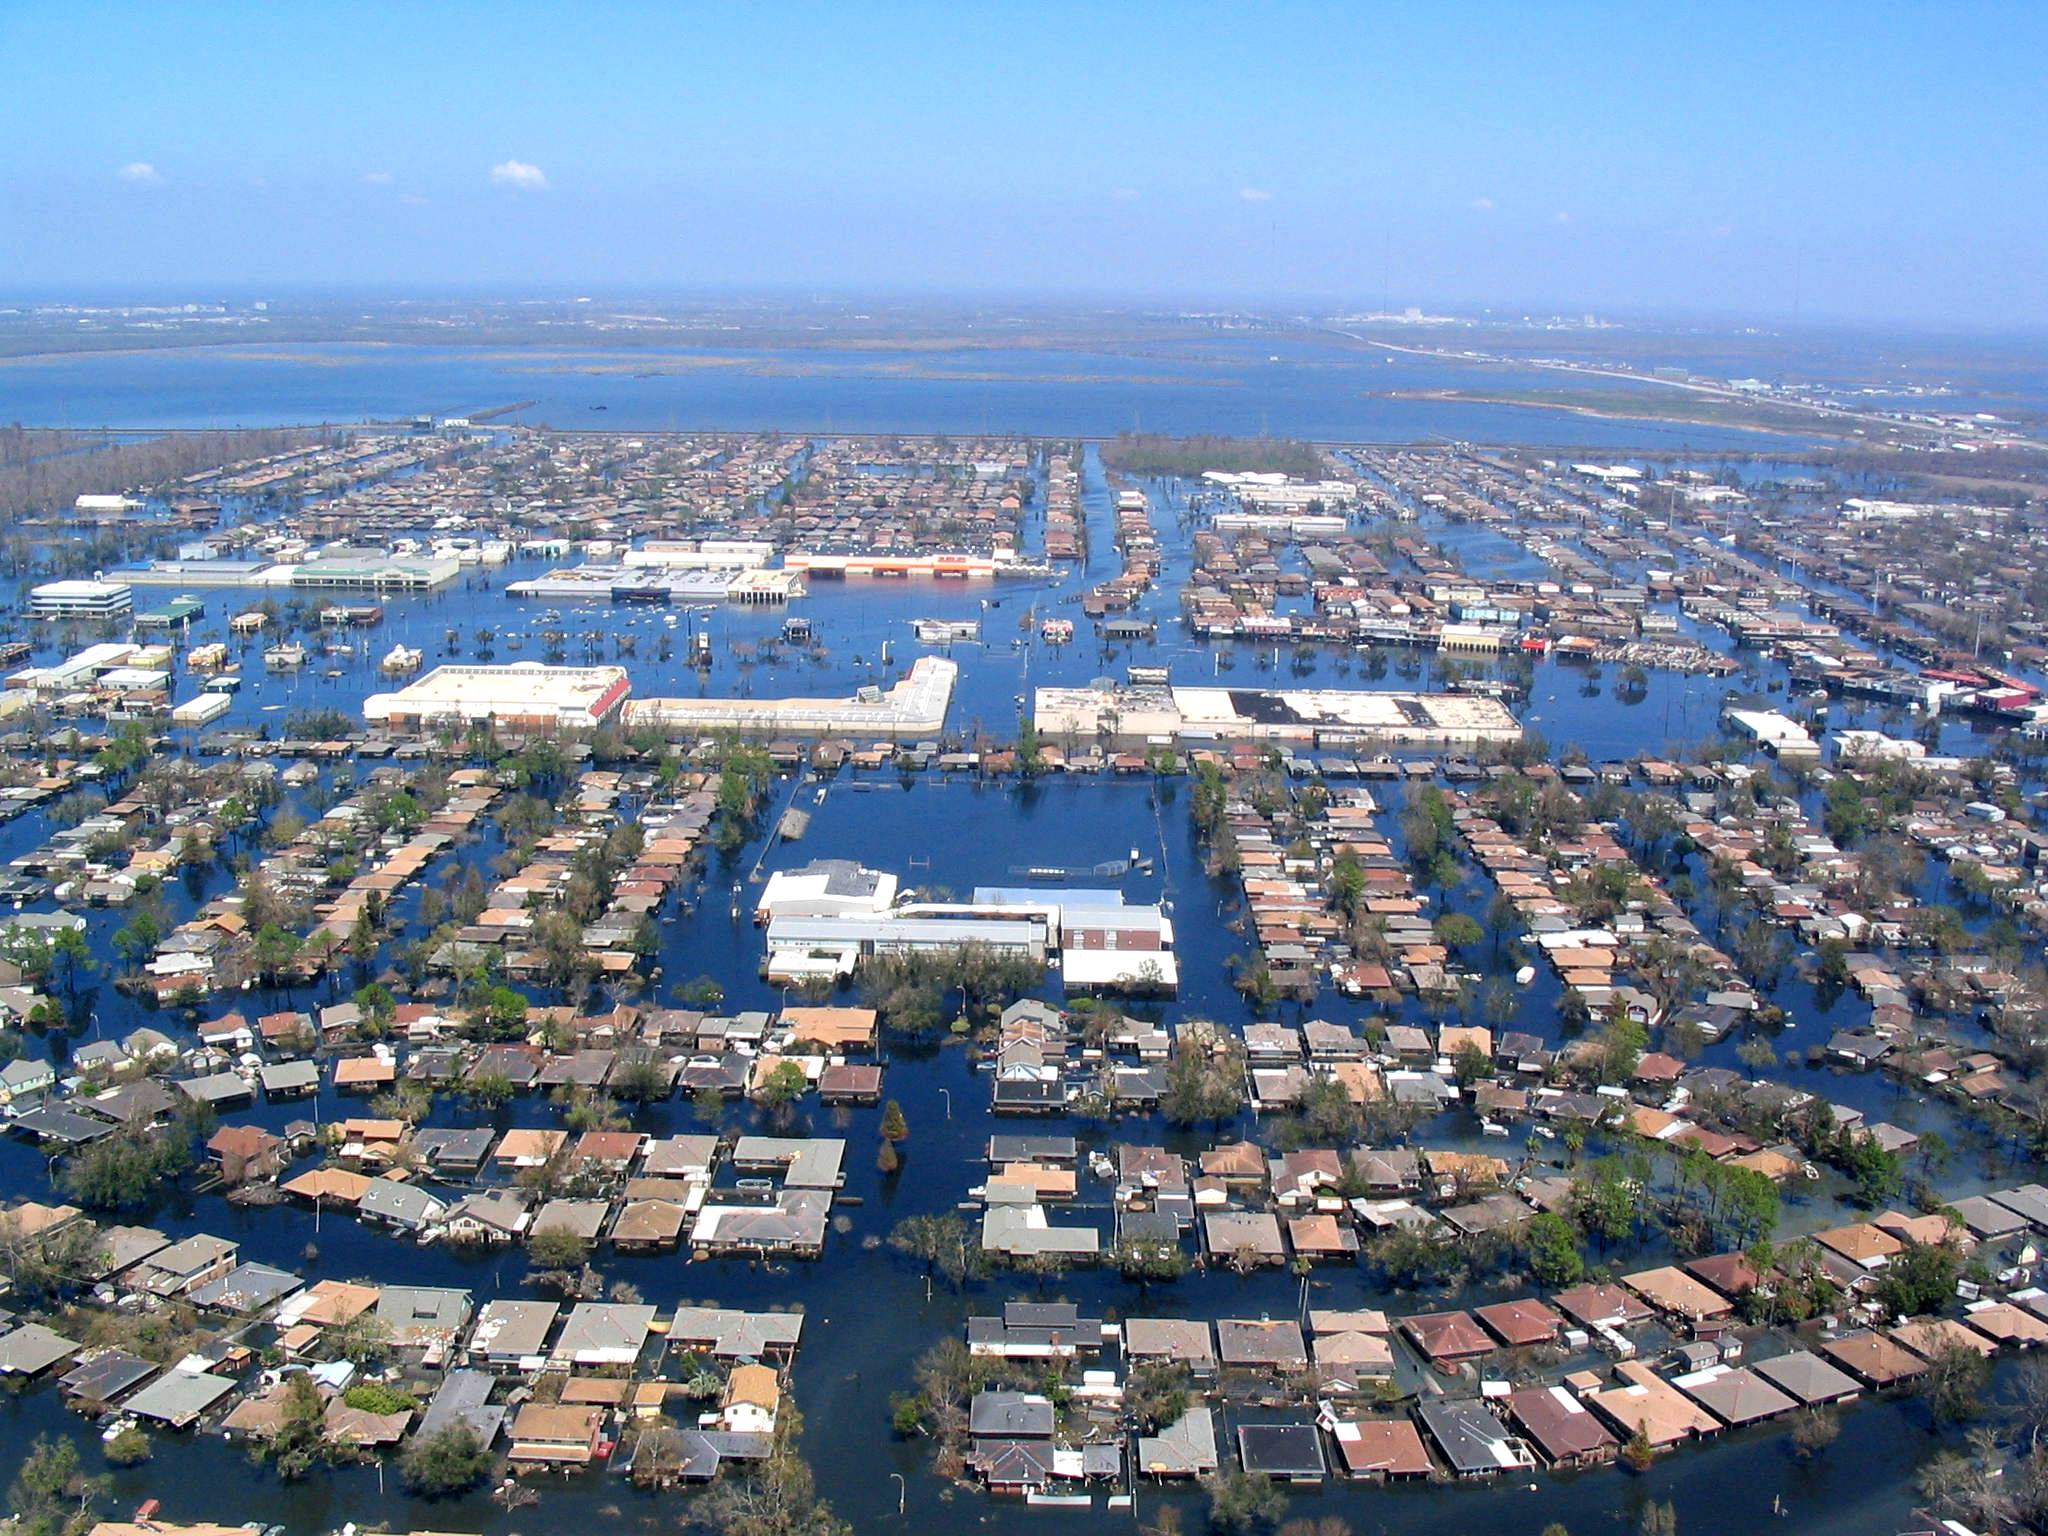 Commercial Business Hurricane Insurance Claim - Adjusters International